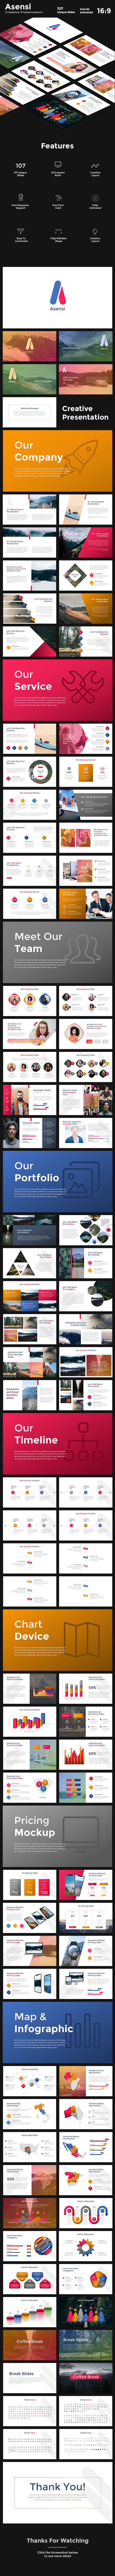 Asensi - Creative Powerpoint Template - Creative PowerPoint Templates